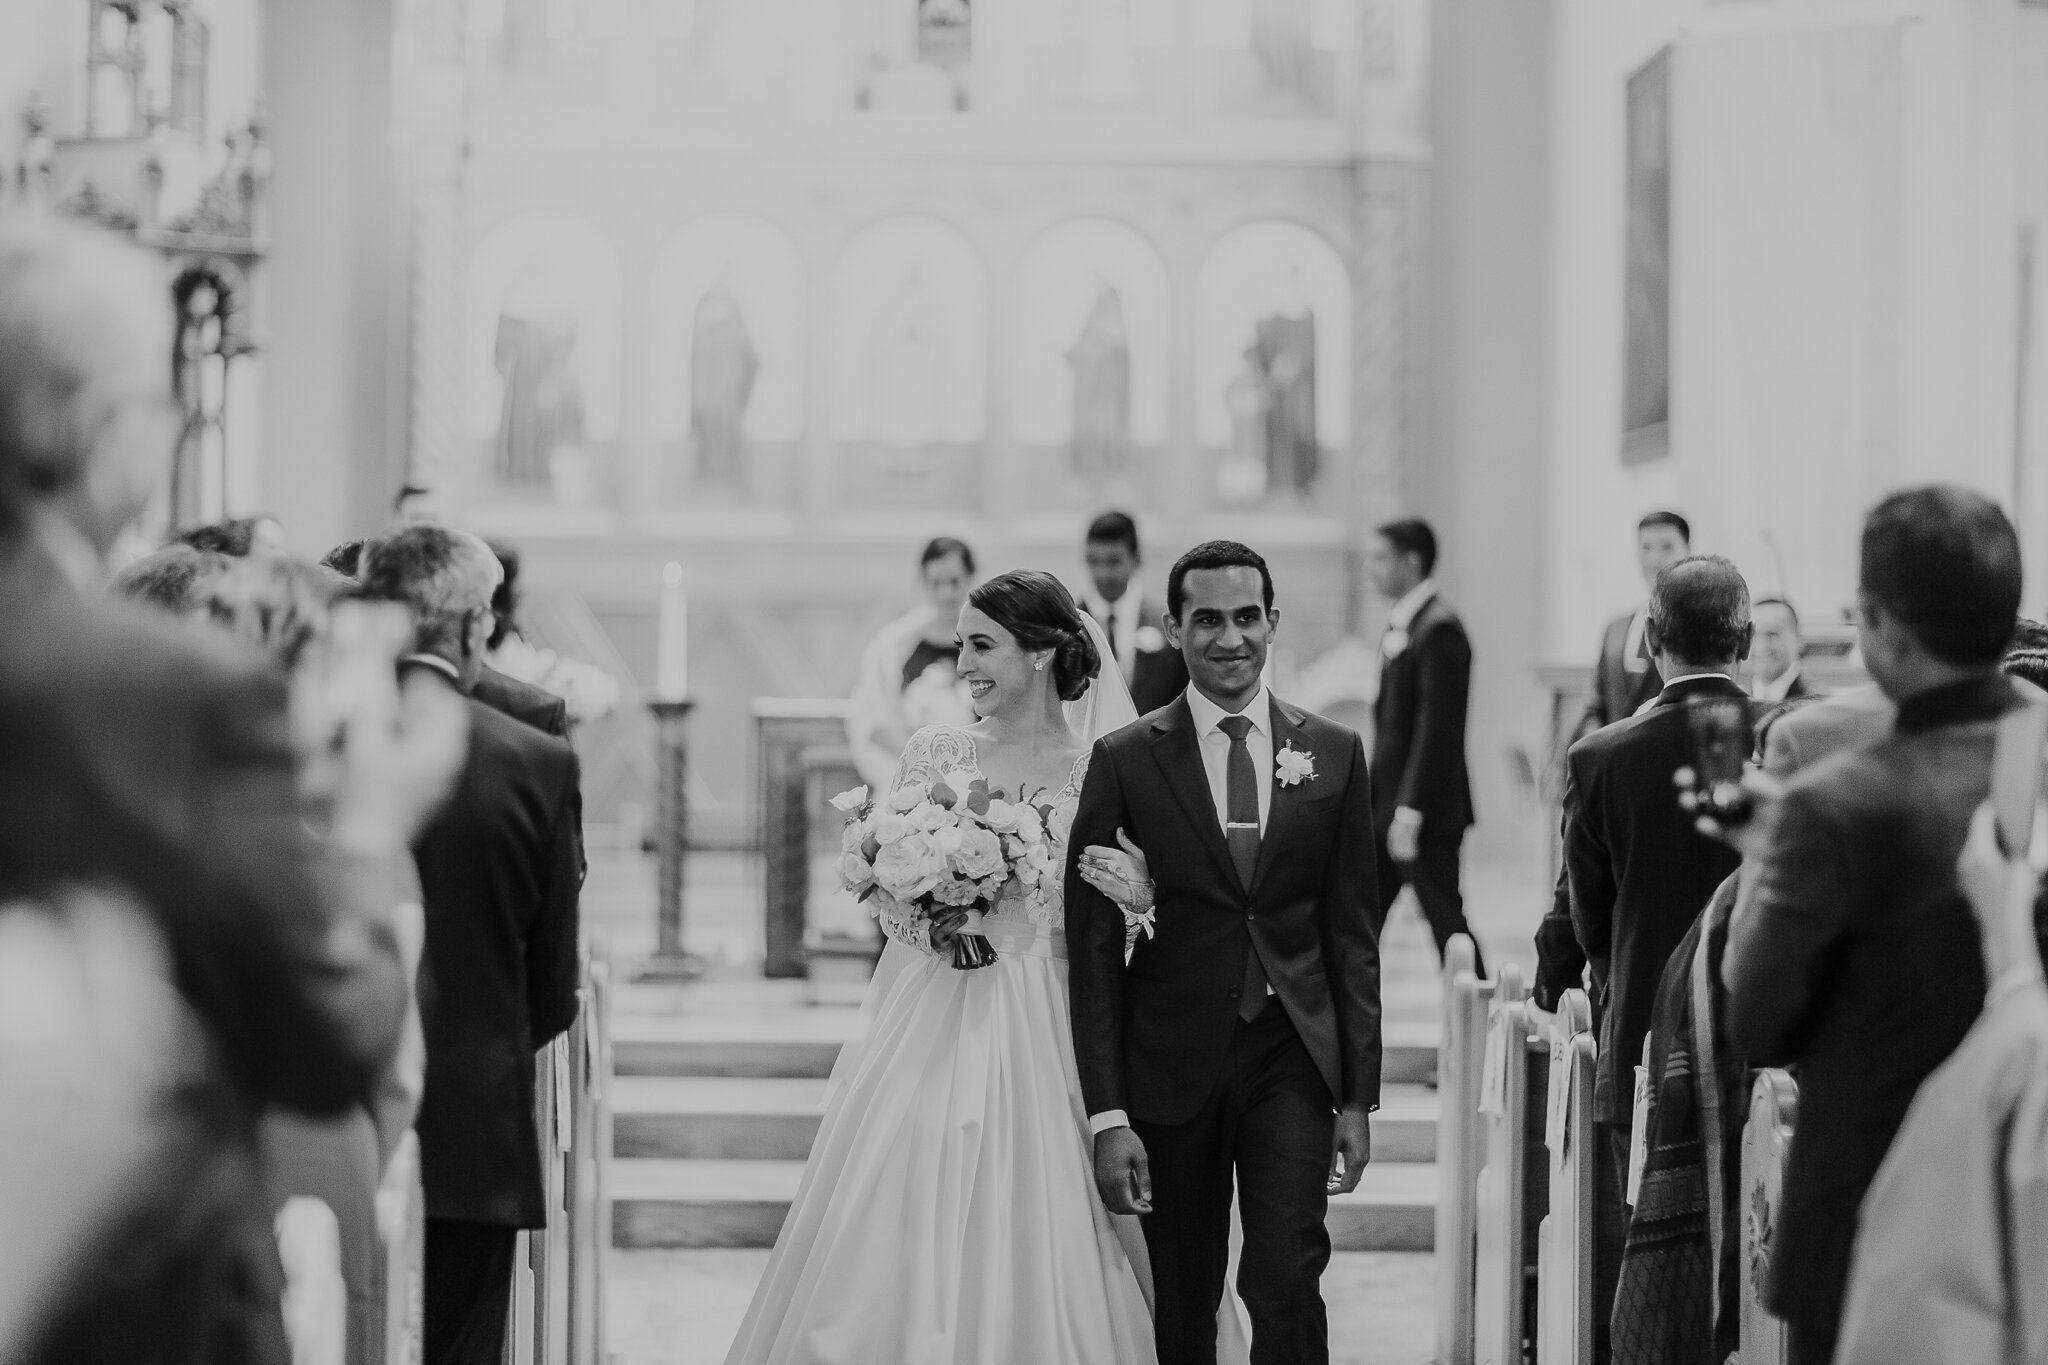 Alicia+lucia+photography+-+albuquerque+wedding+photographer+-+santa+fe+wedding+photography+-+new+mexico+wedding+photographer+-+new+mexico+wedding+-+hindu+wedding+-+catholic+wedding+-+multicultural+wedding+-+santa+fe+wedding_0036.jpg